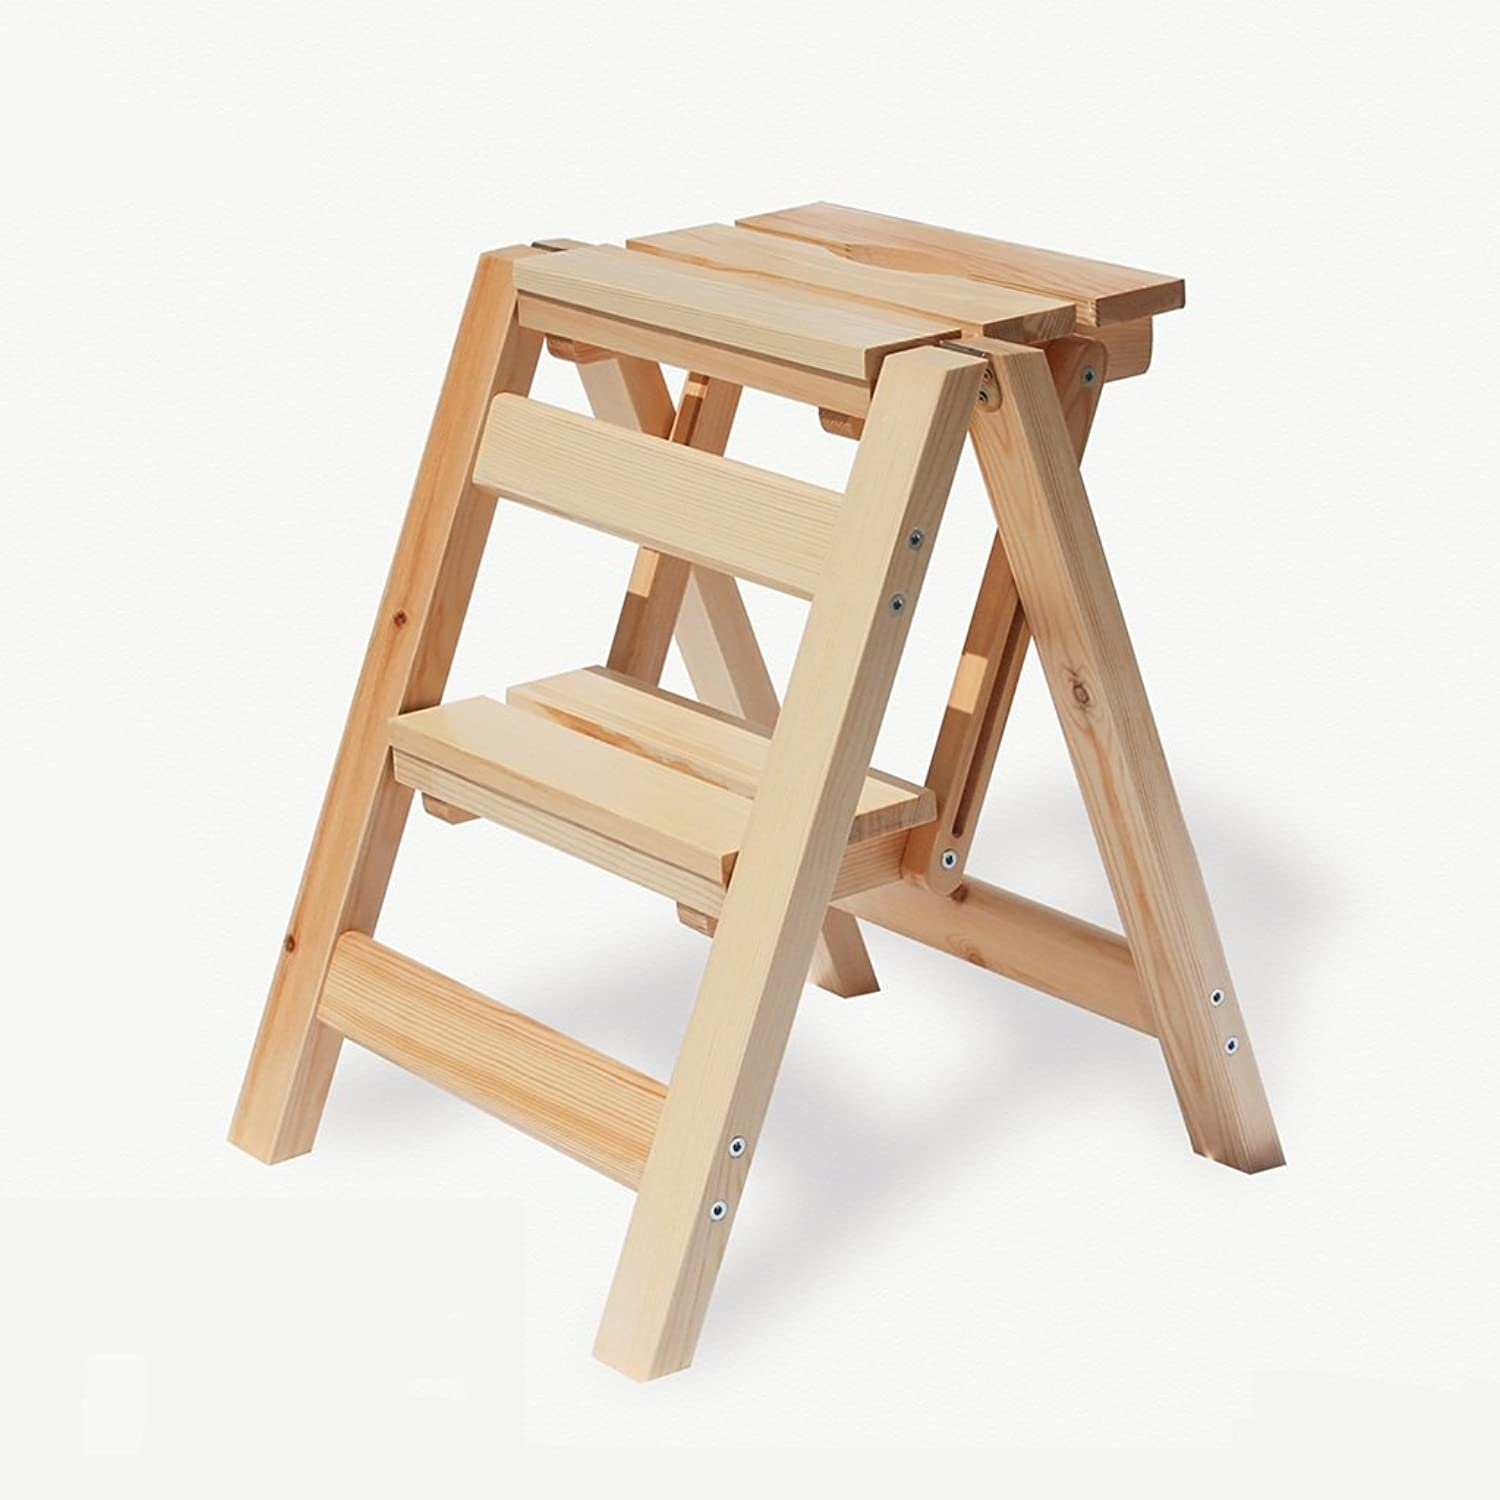 Solid Wood Step Stool Household Multi-Functional Solid Wood Ladder Foldable Two-Step Ladder Portable Small Wooden Ladder 39  44  47CM 2-Step Stool